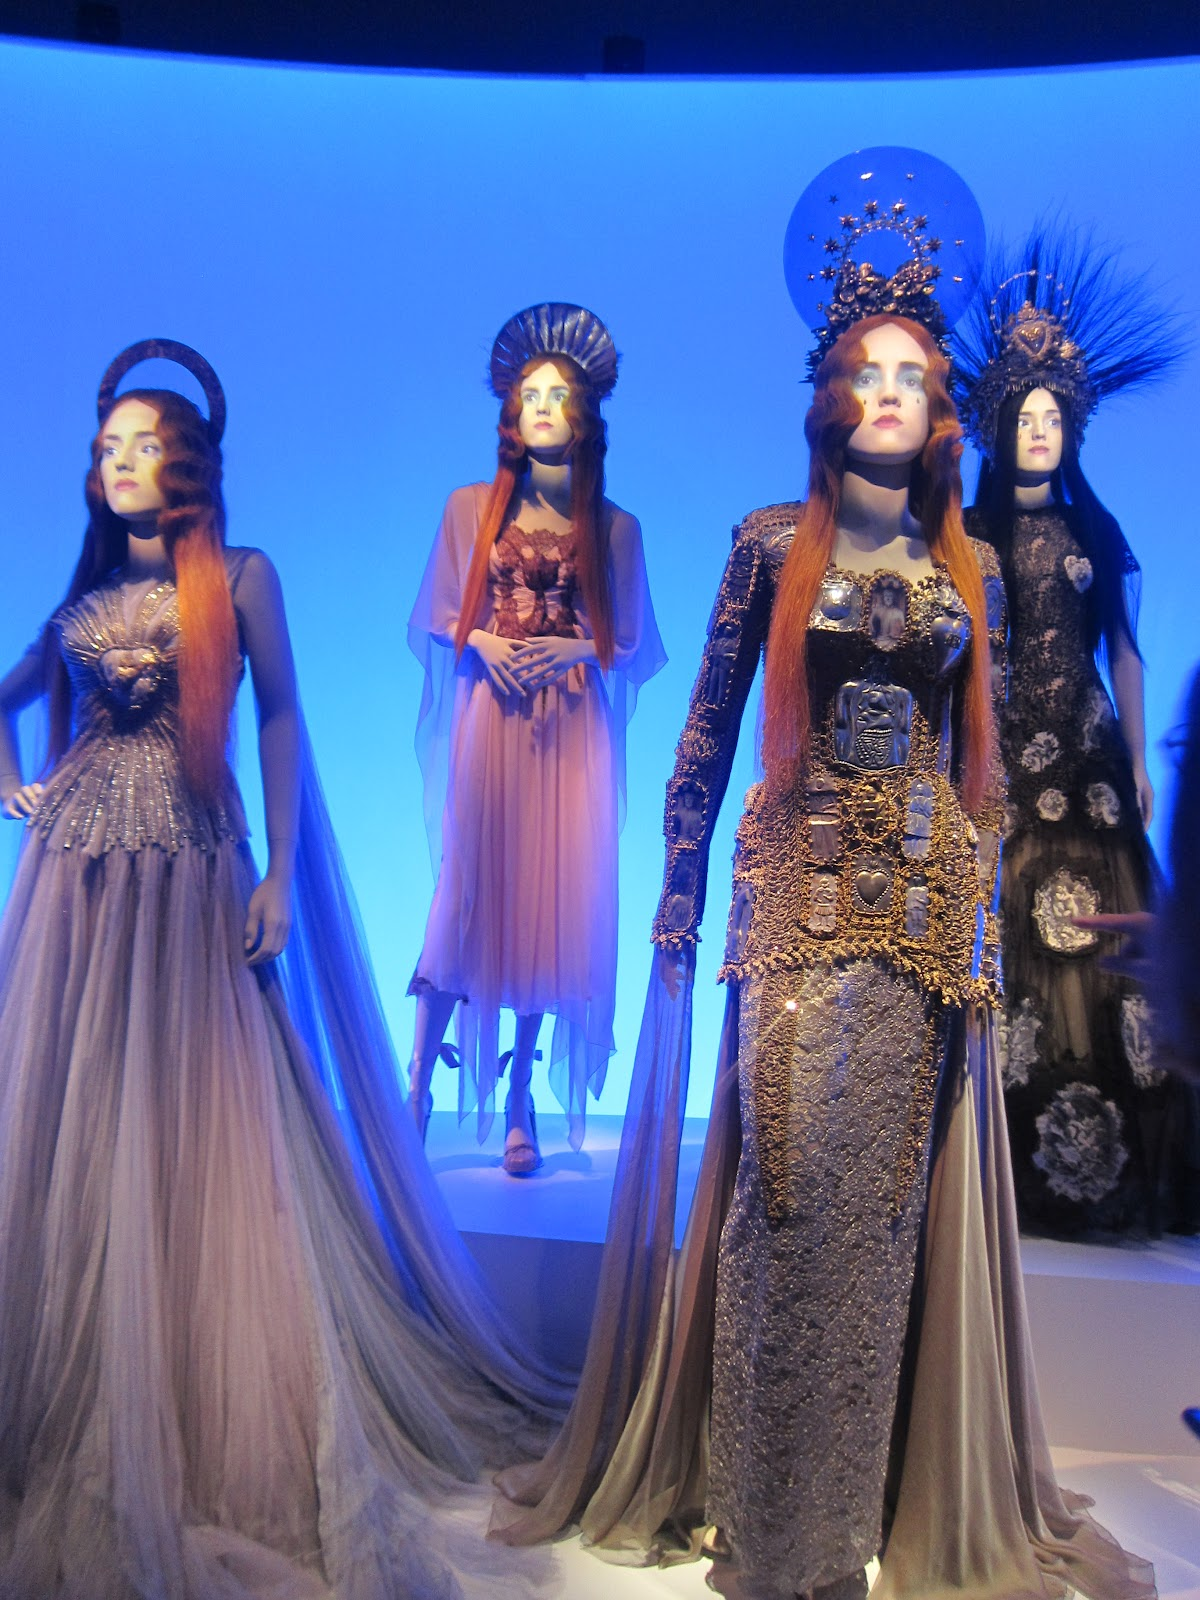 Shamelessly overdressed event photos jean paul gaultier fashion exhibit the de young - Age de jean paul gaultier ...